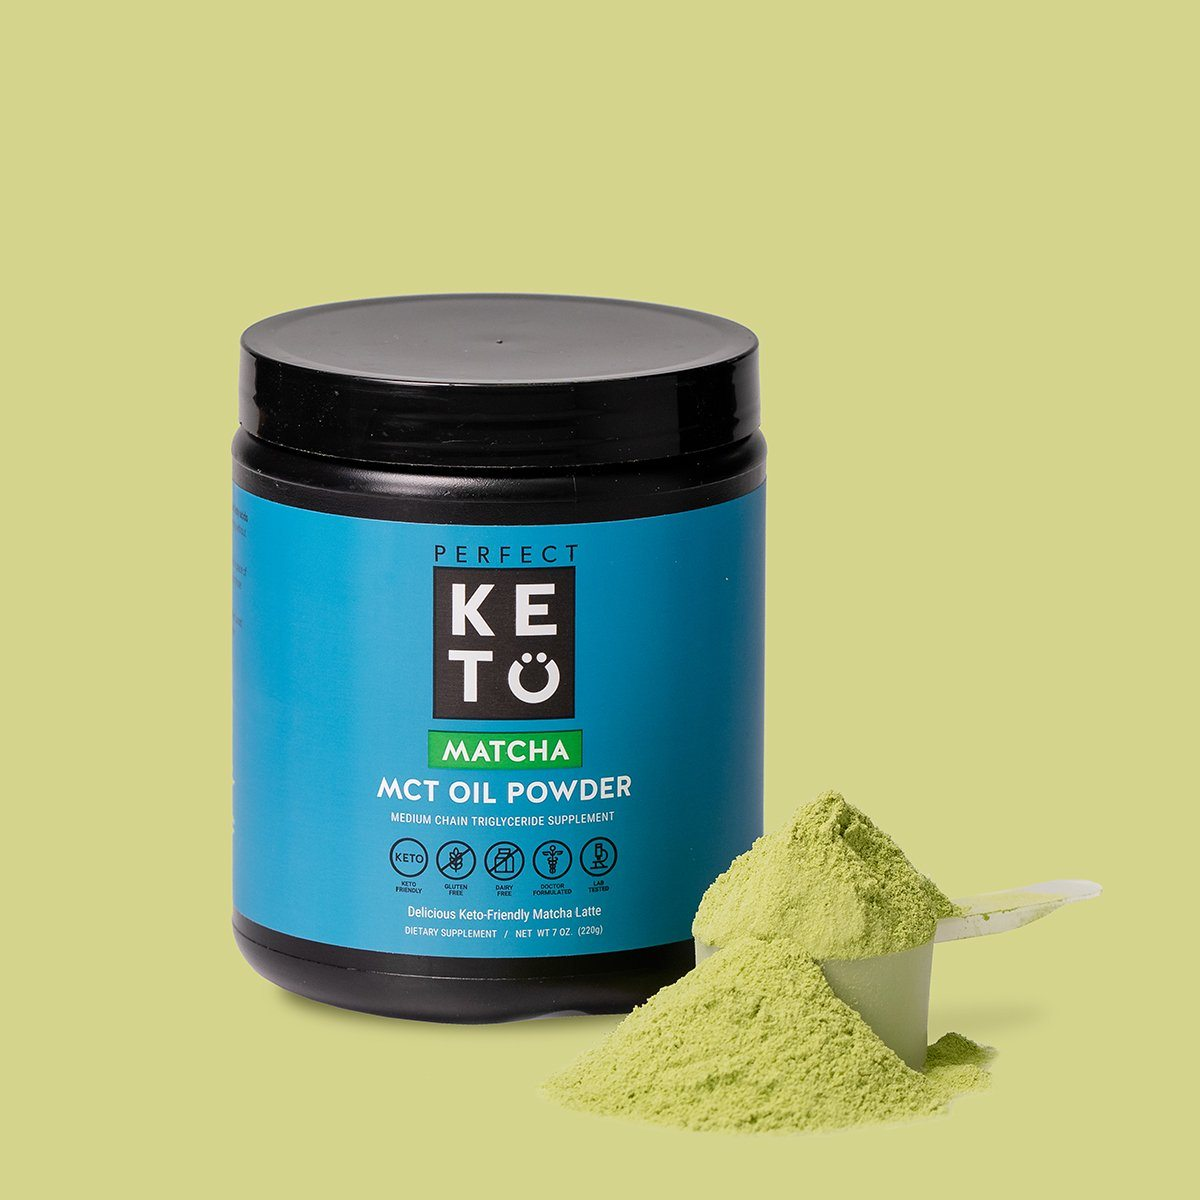 Matcha Latte MCT Oil Powder